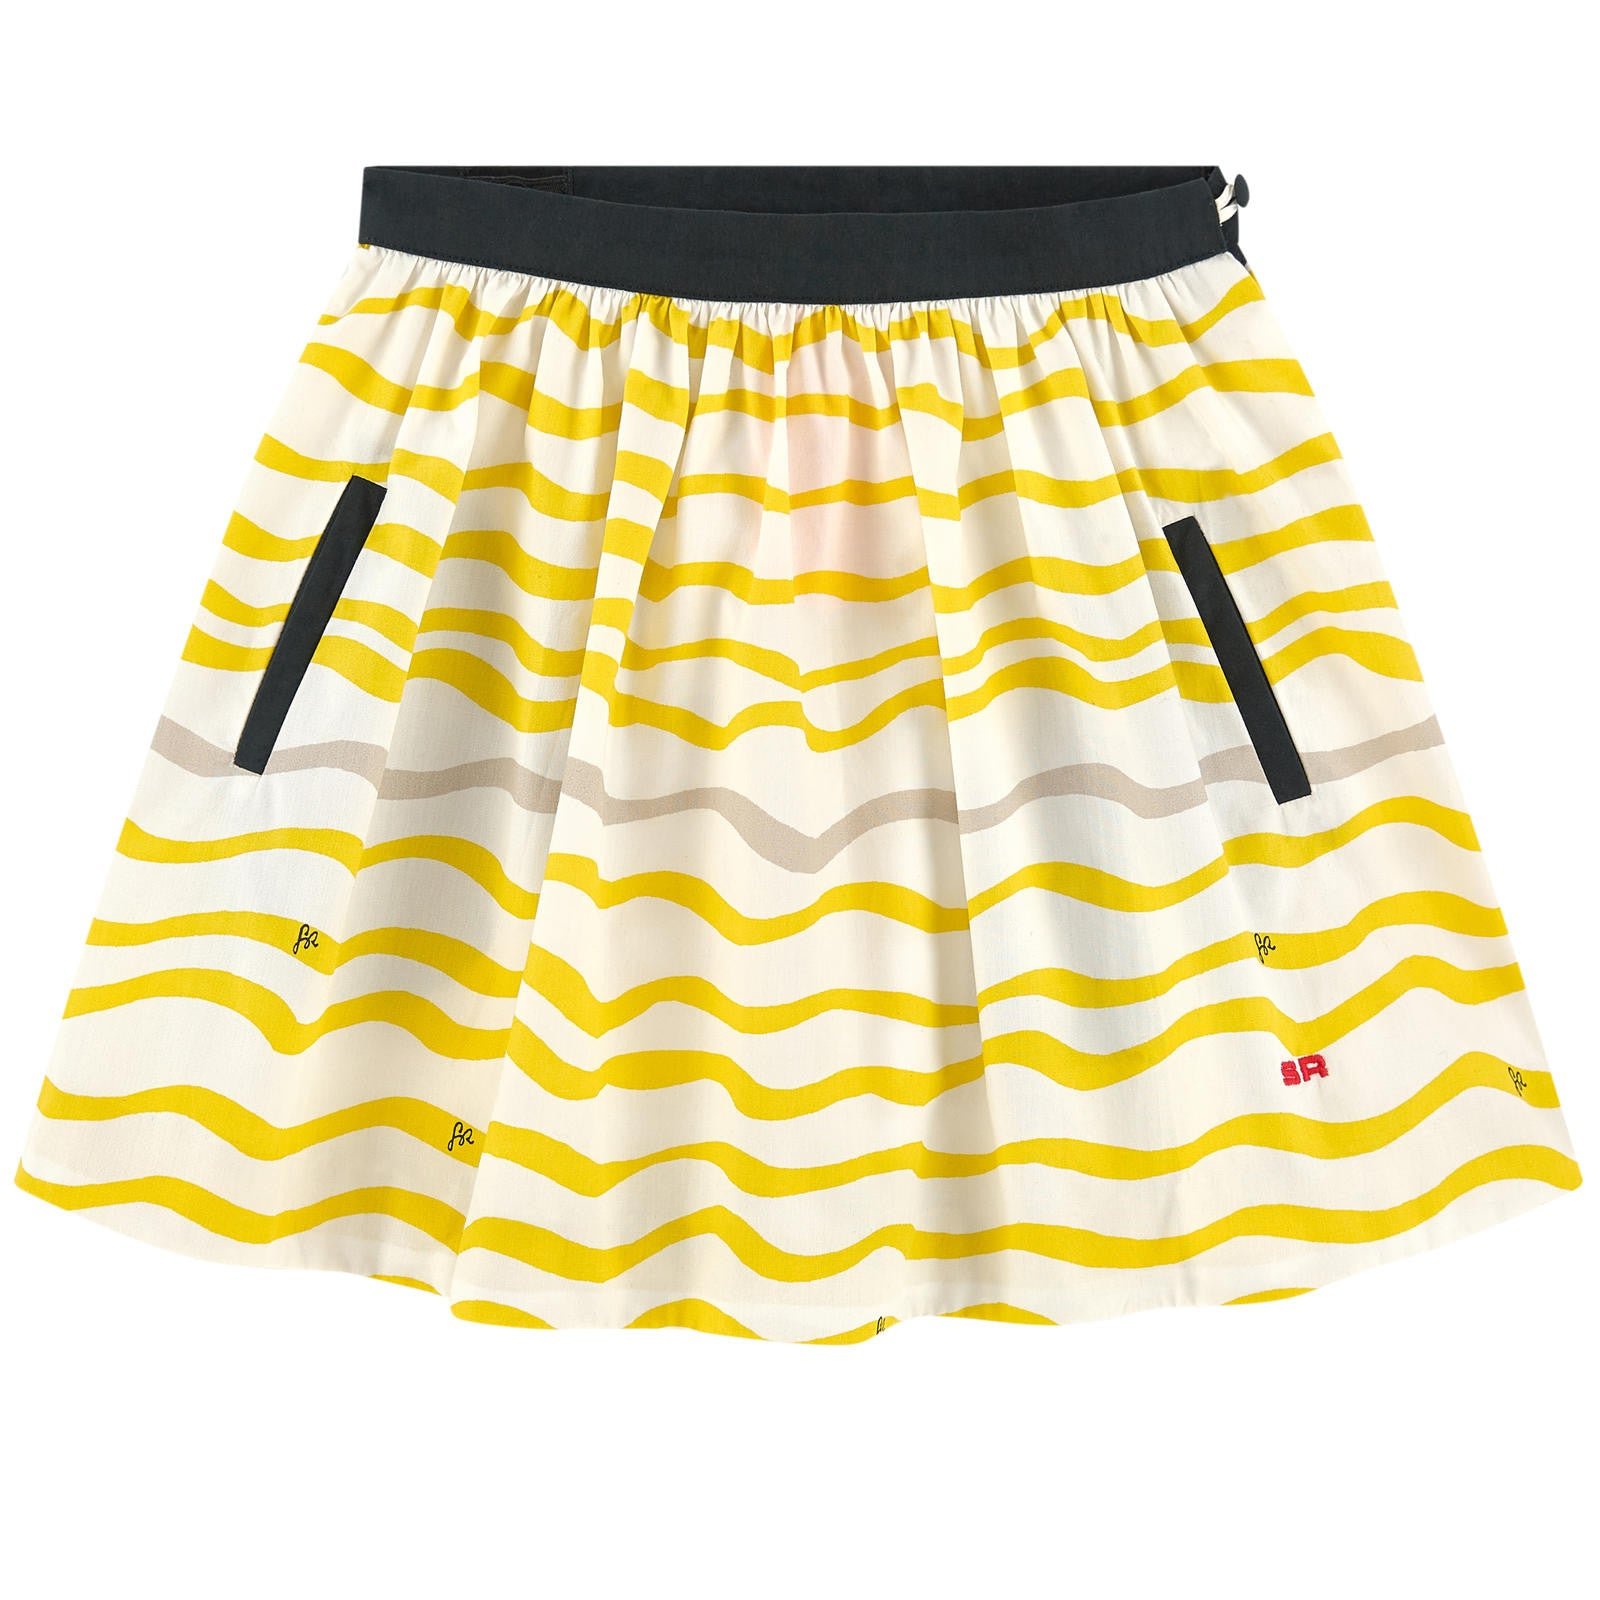 Sonia Yellow Wave Print Skirt - Ladida